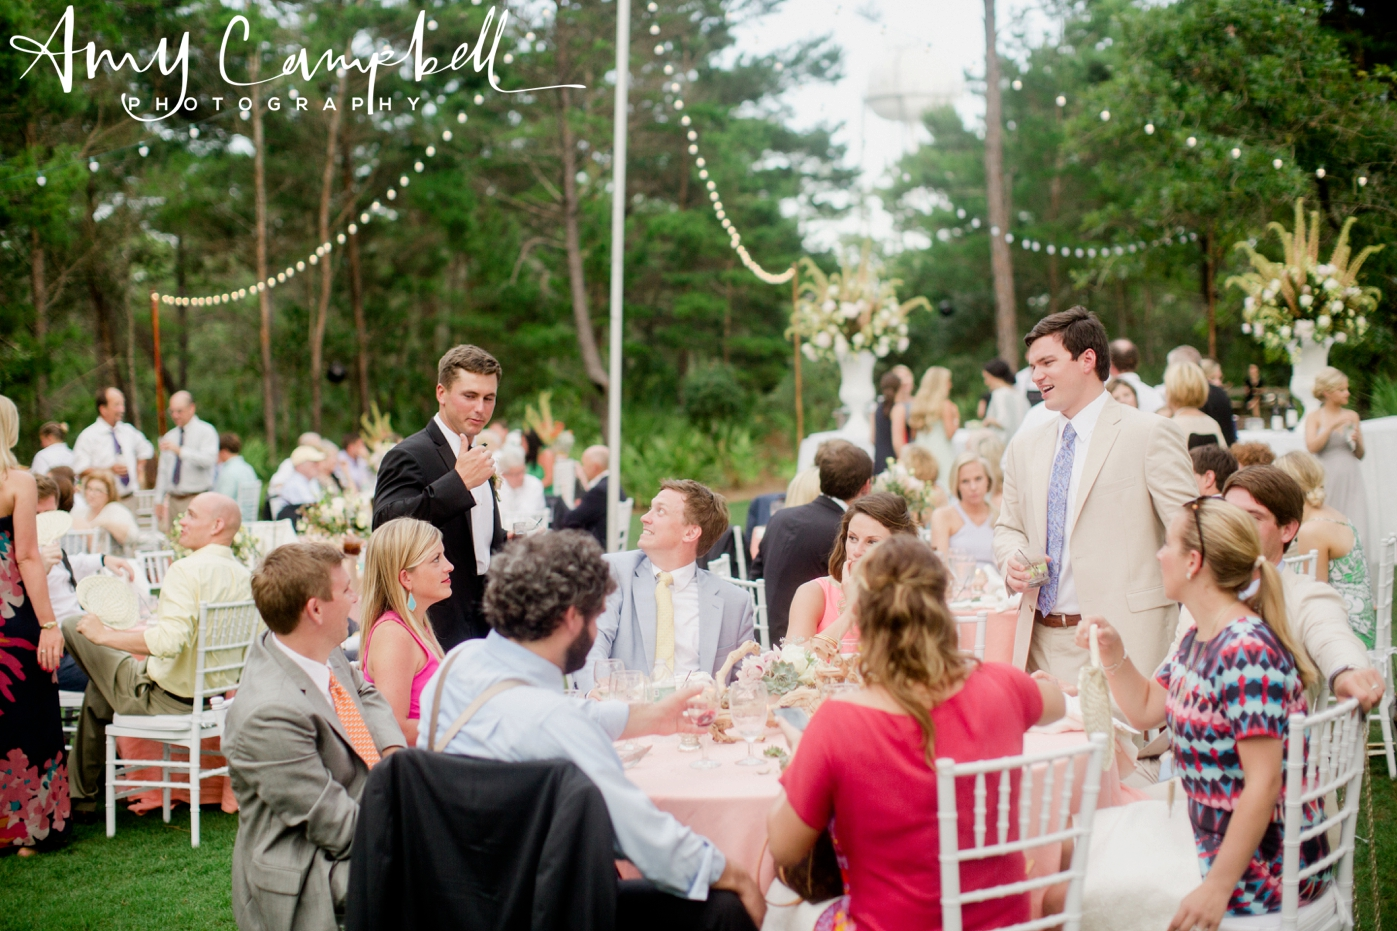 emilyreed_wed_blog_amycampbellphotography_0093.jpg